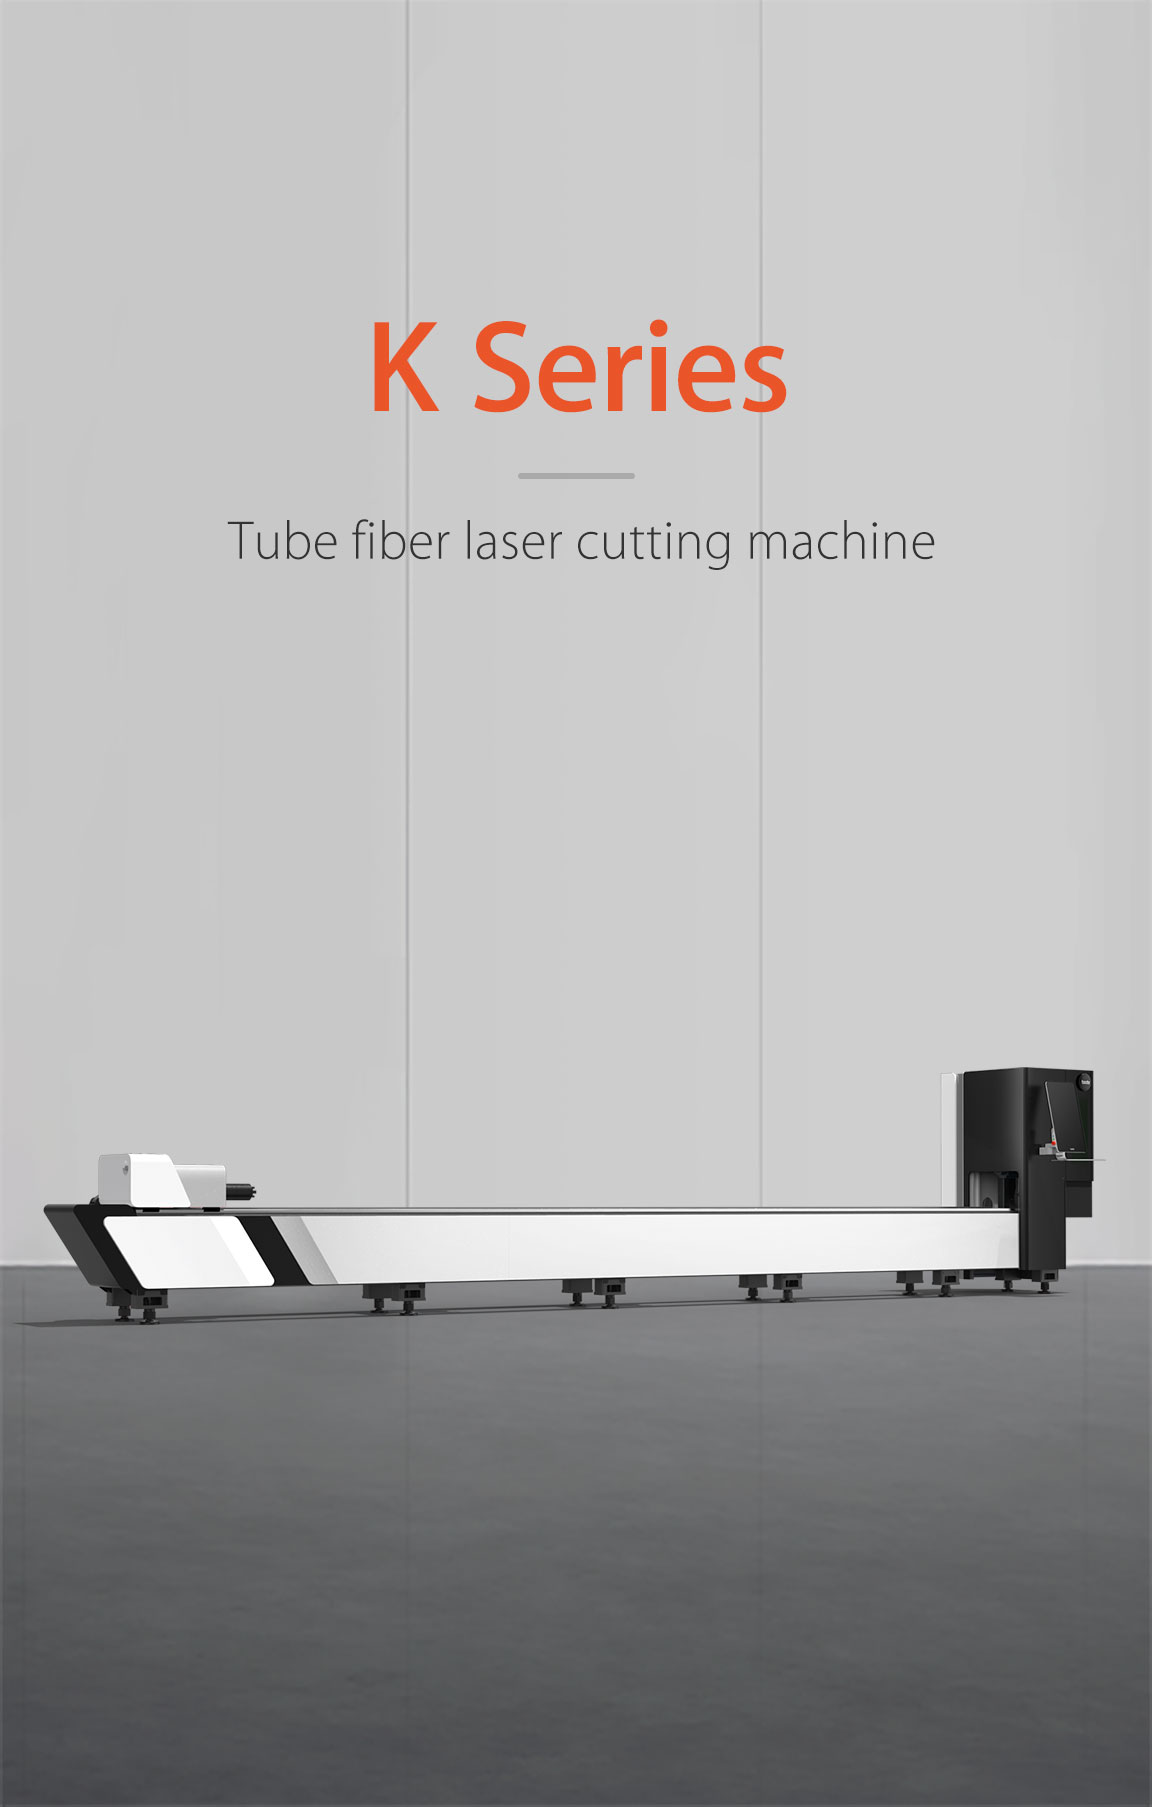 Economical tube fiber laser cutting machine k Series